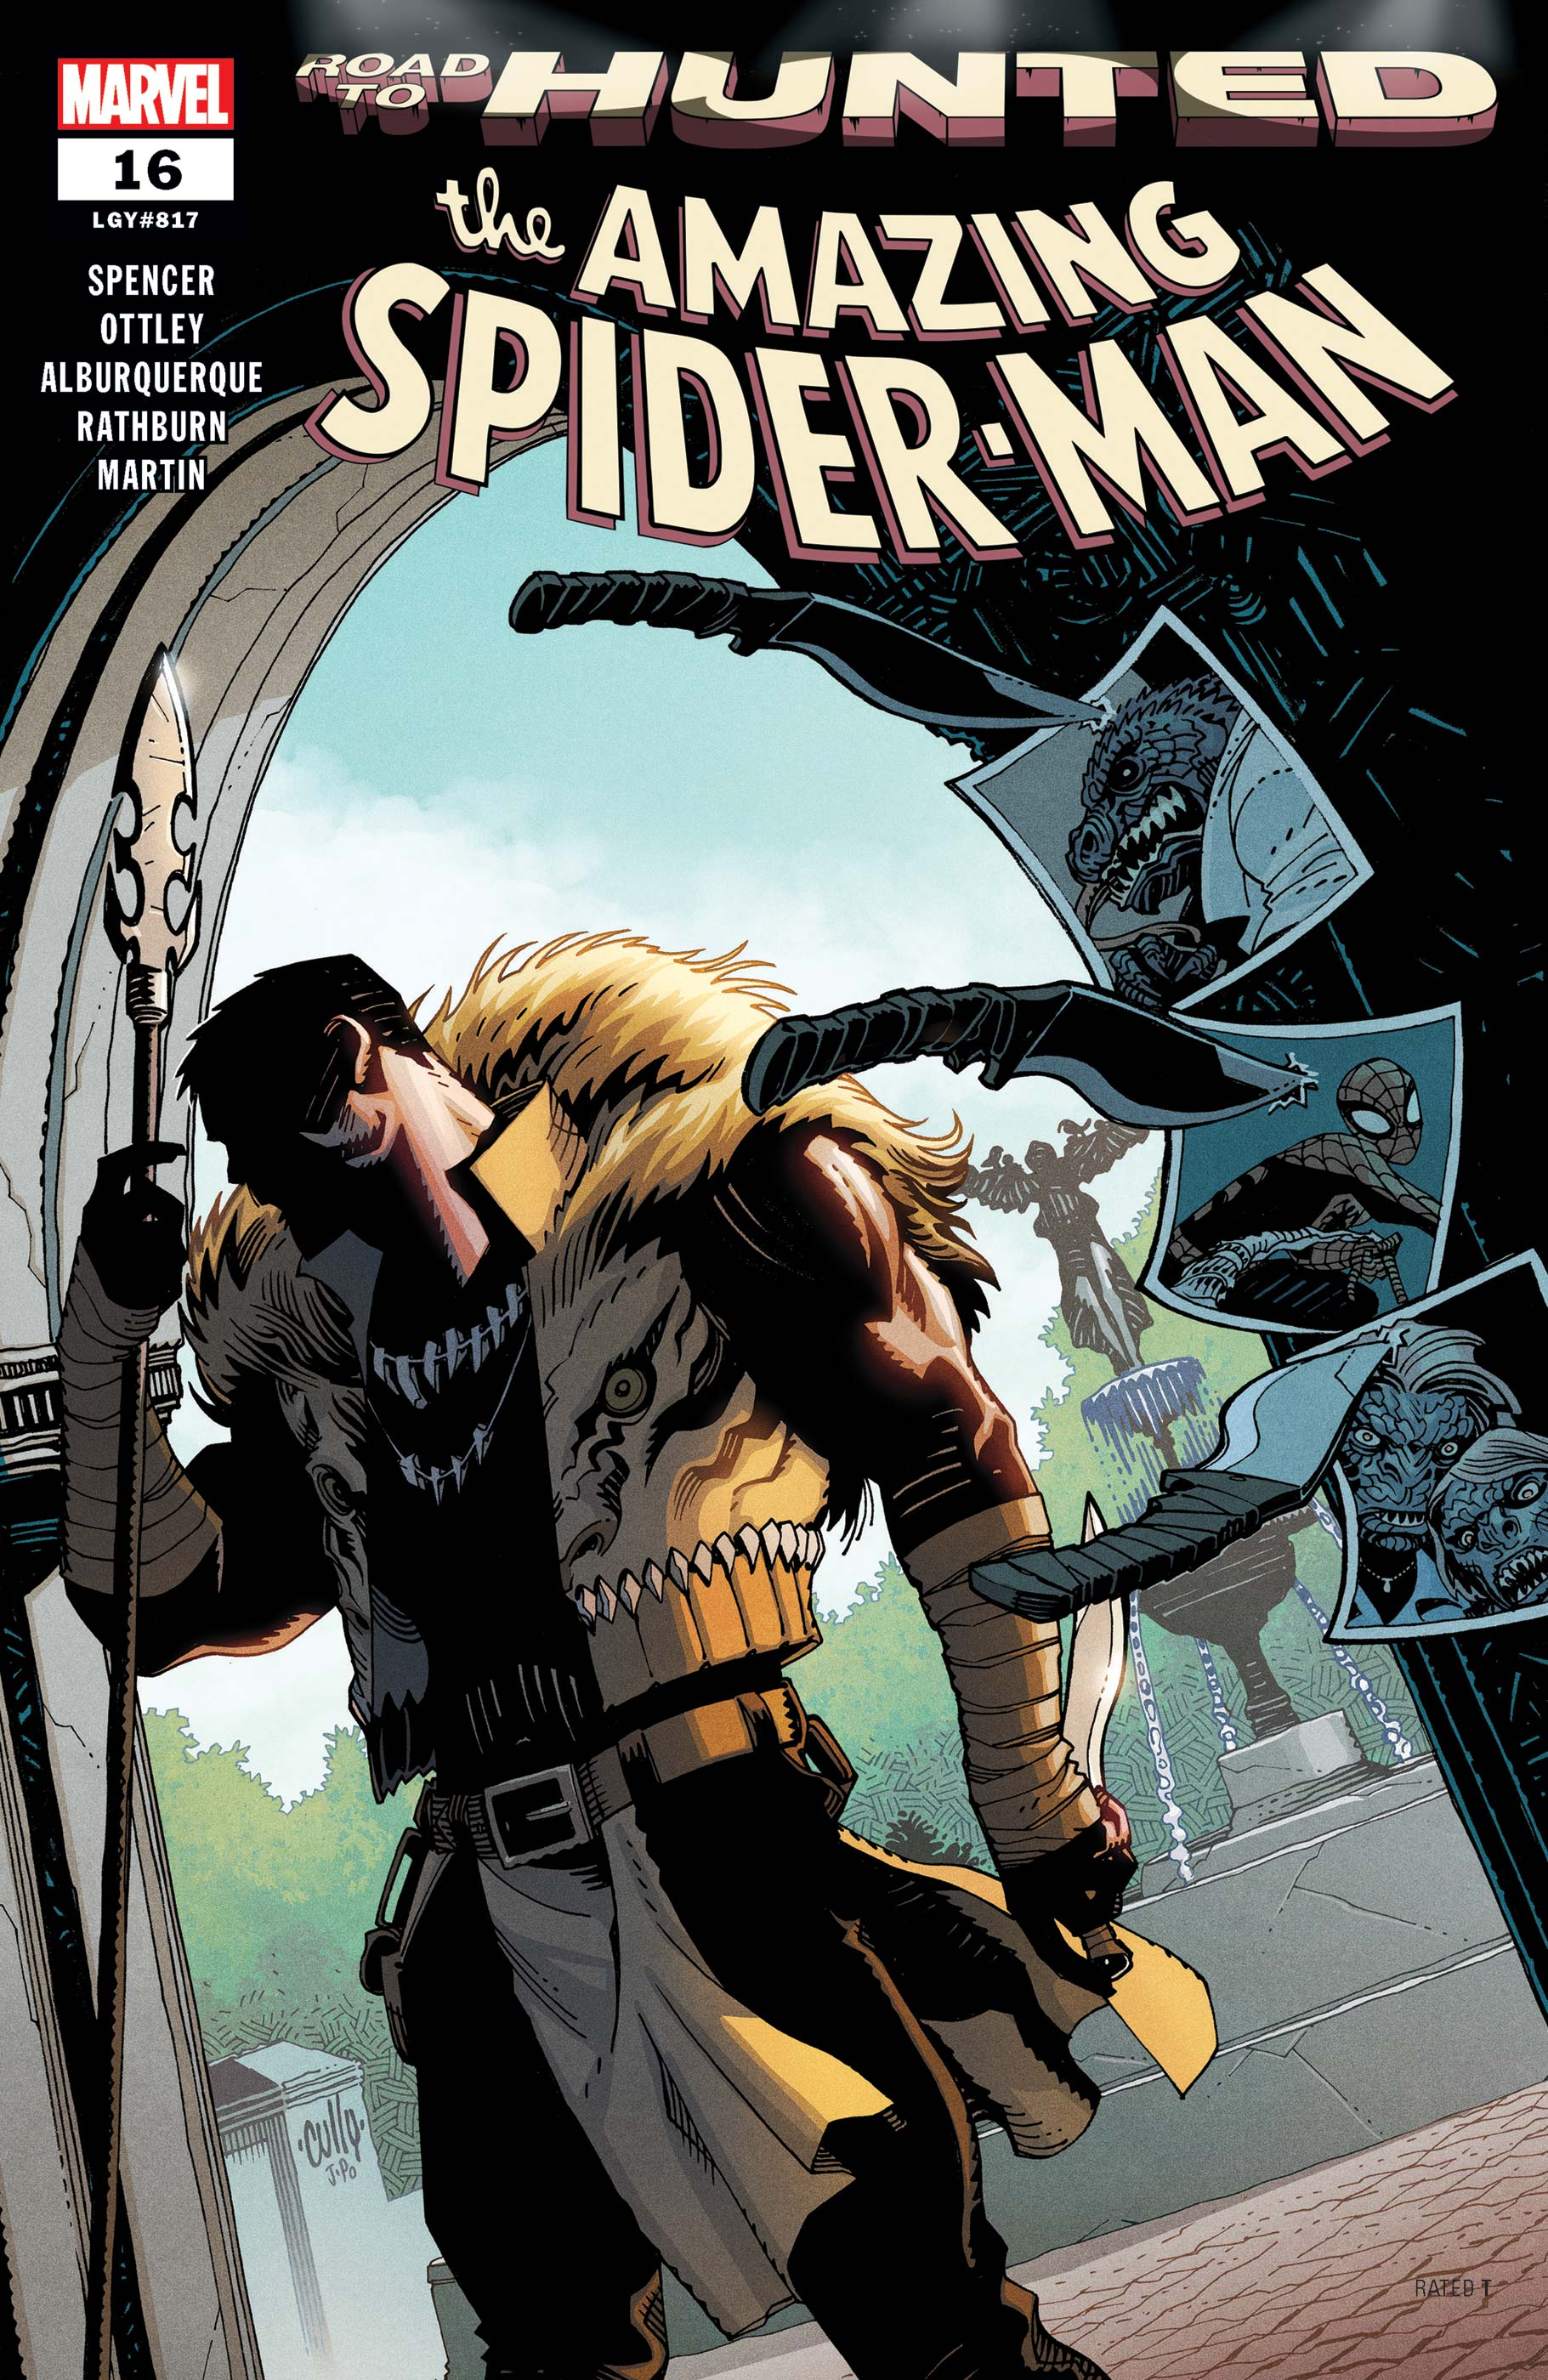 The Amazing Spider-Man (2018) #16